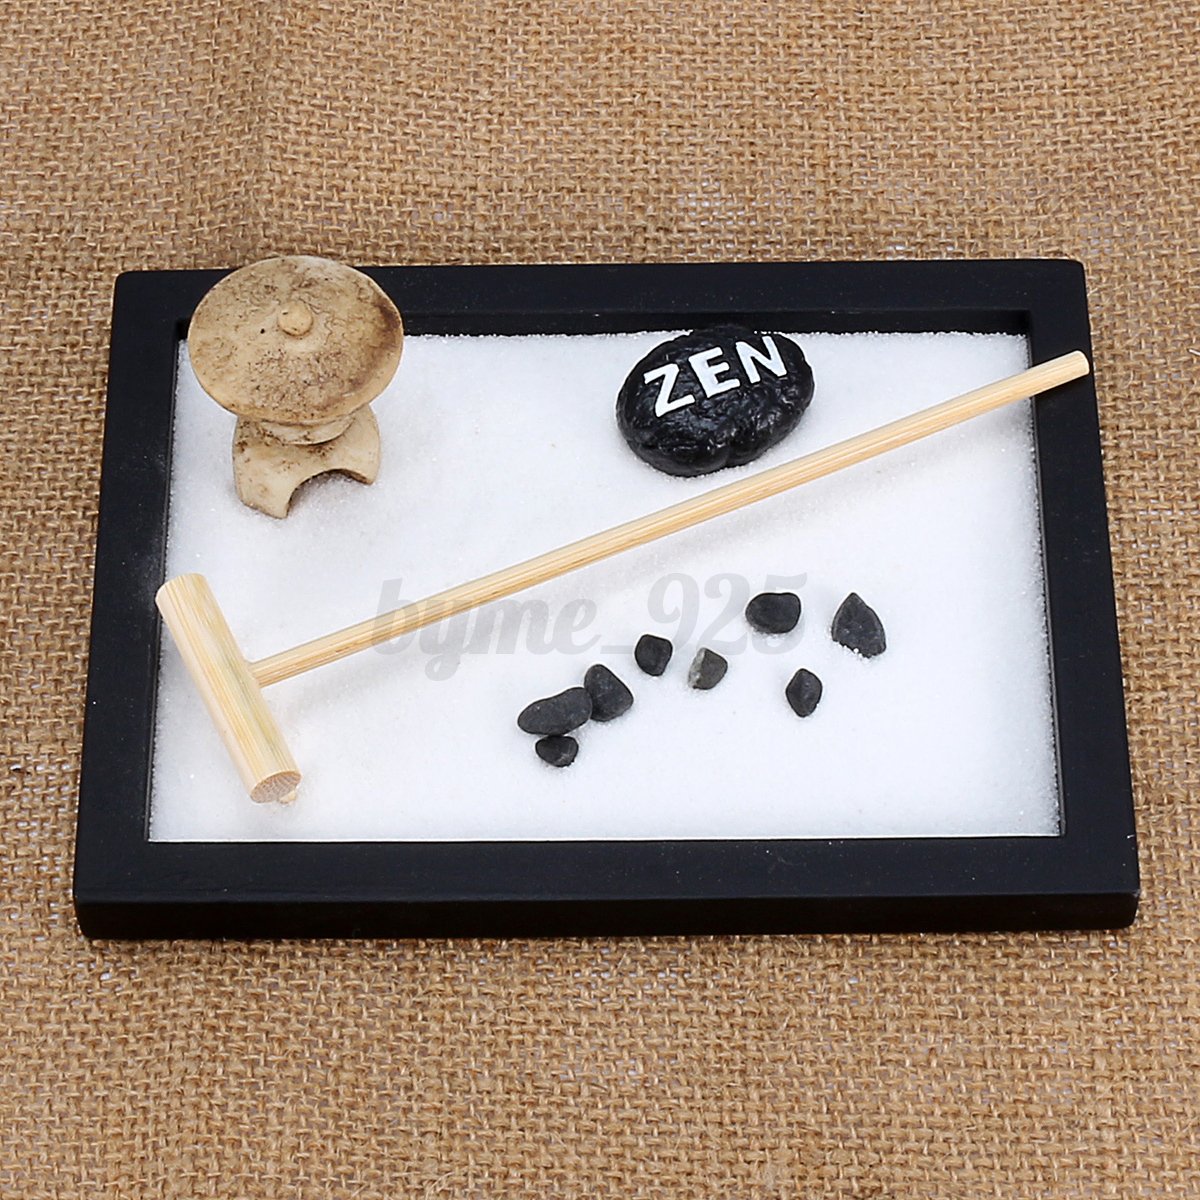 Table Top Zen Garden Details About 15cm Resin Feng Shui Zen Garden Stone Rake Pebble Sand Tabletop Tray Home